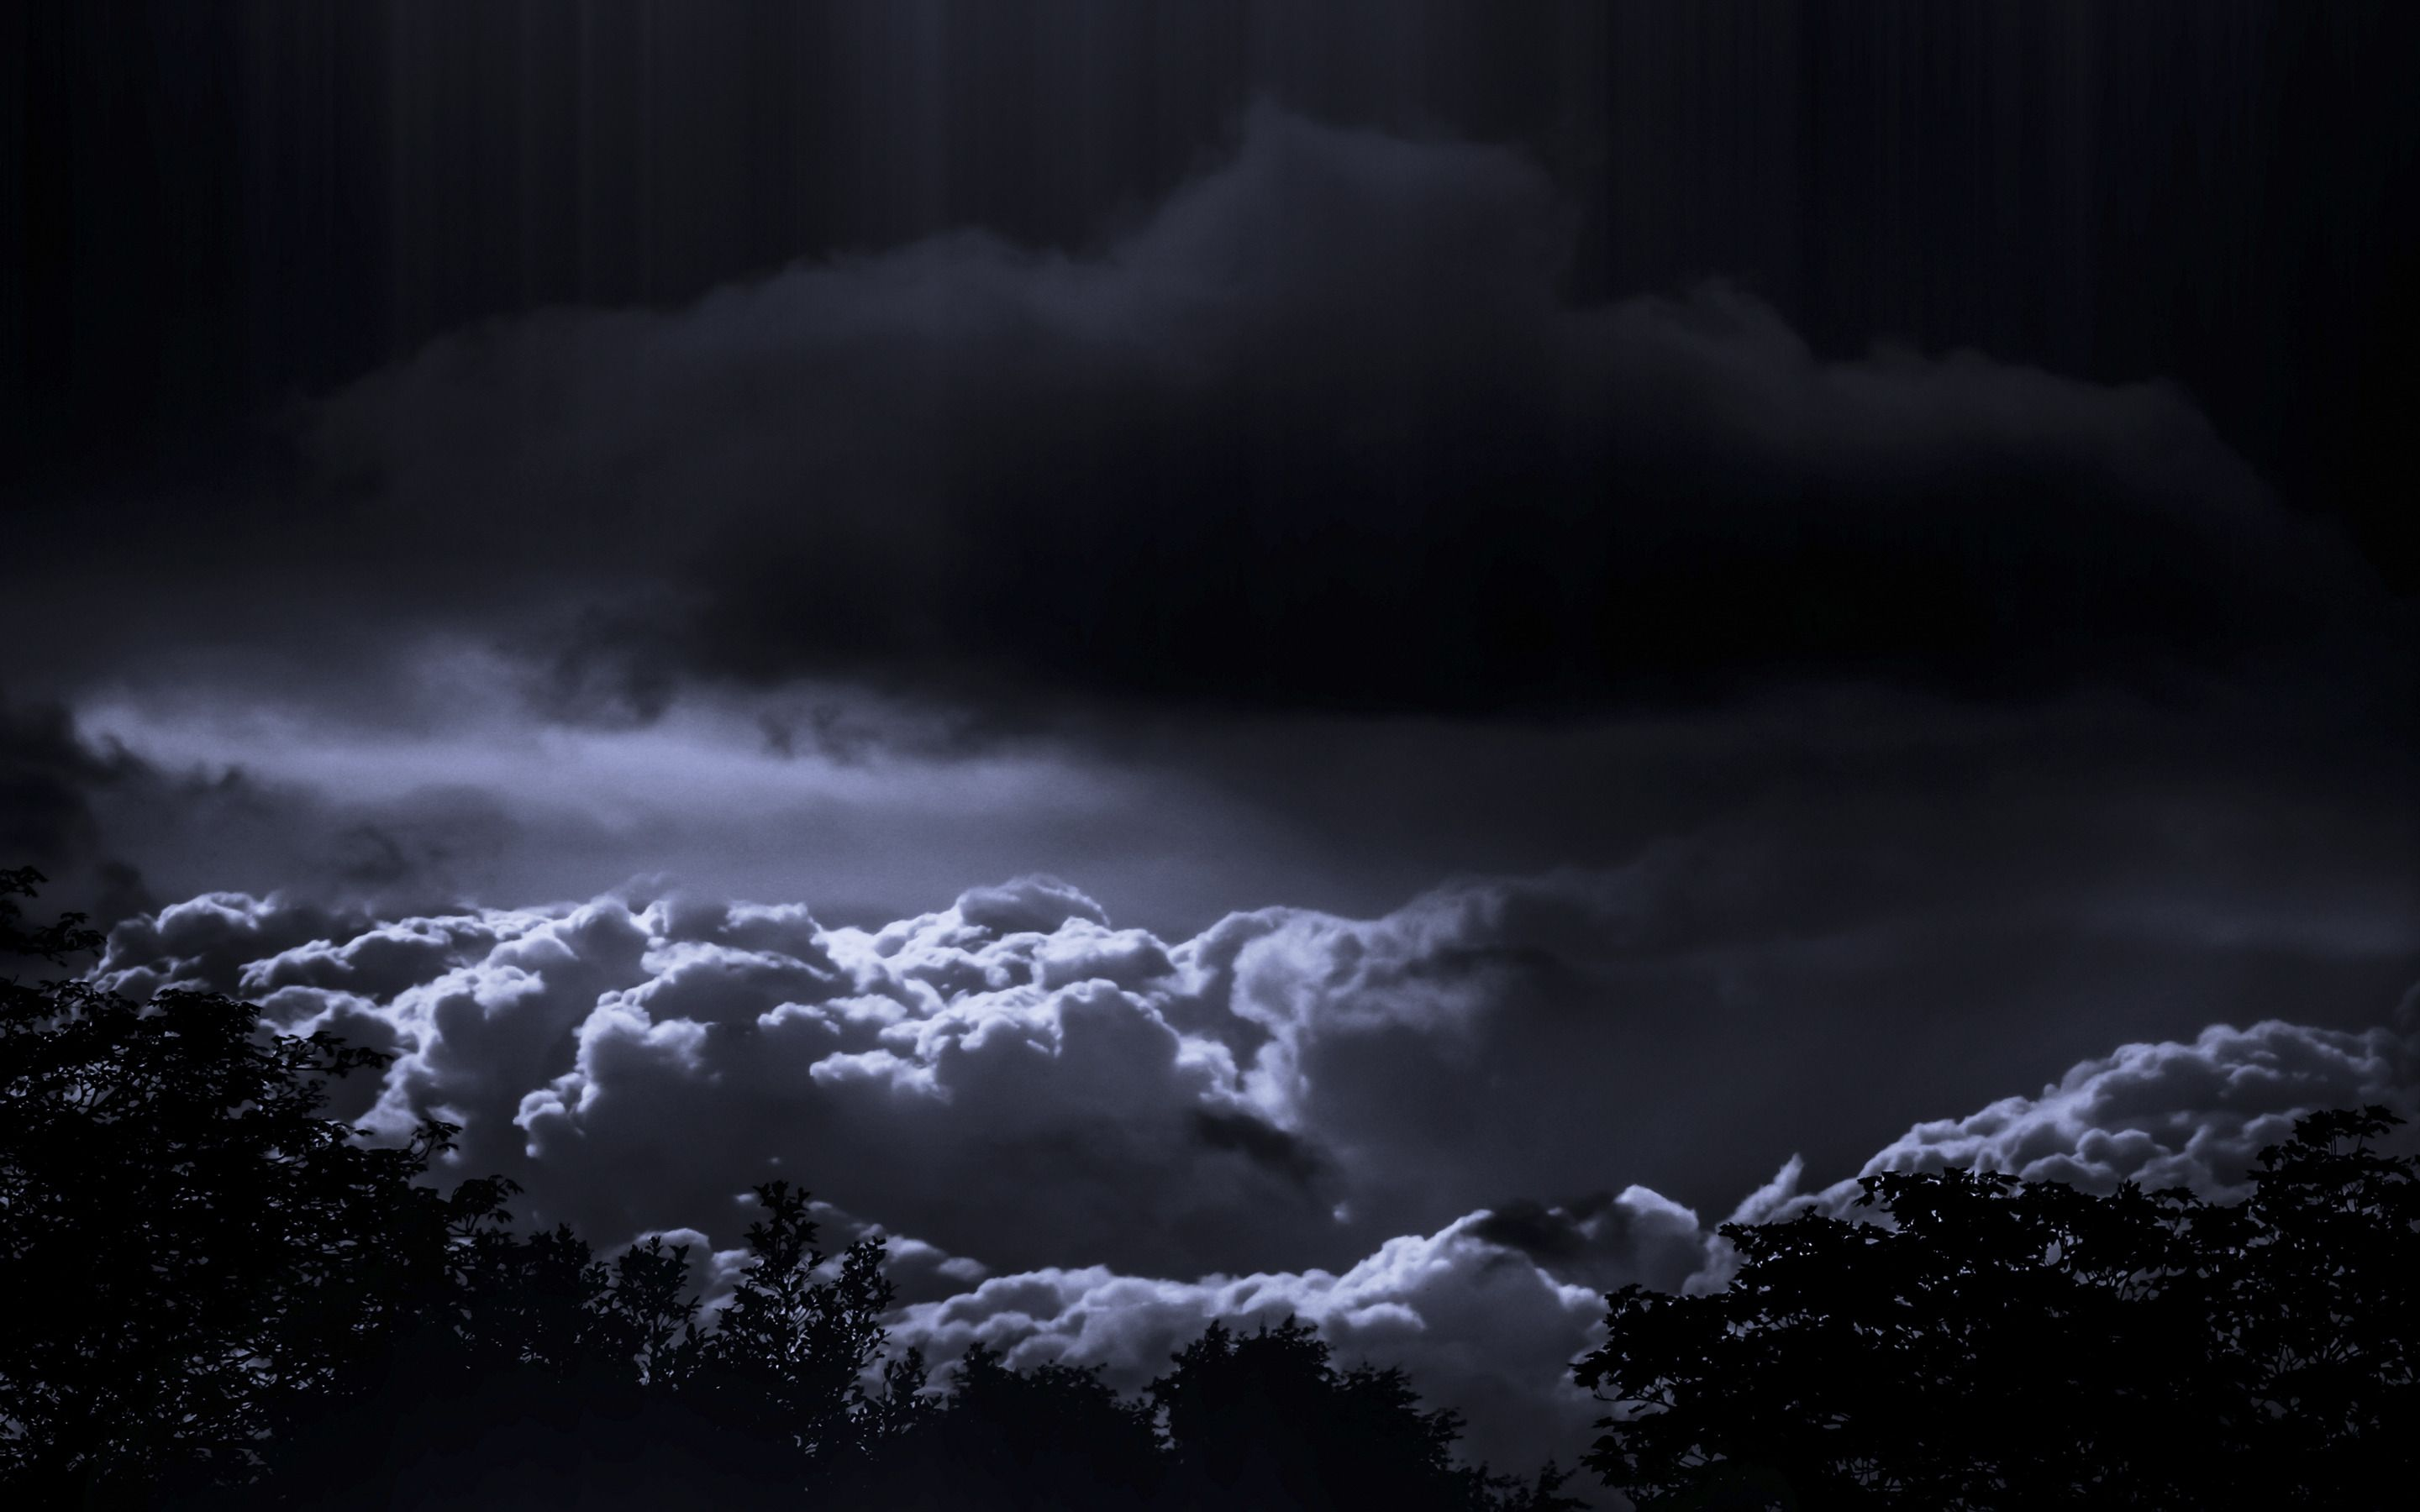 Dark Storm Clouds - HD wallpapers | Stormy Skies ...